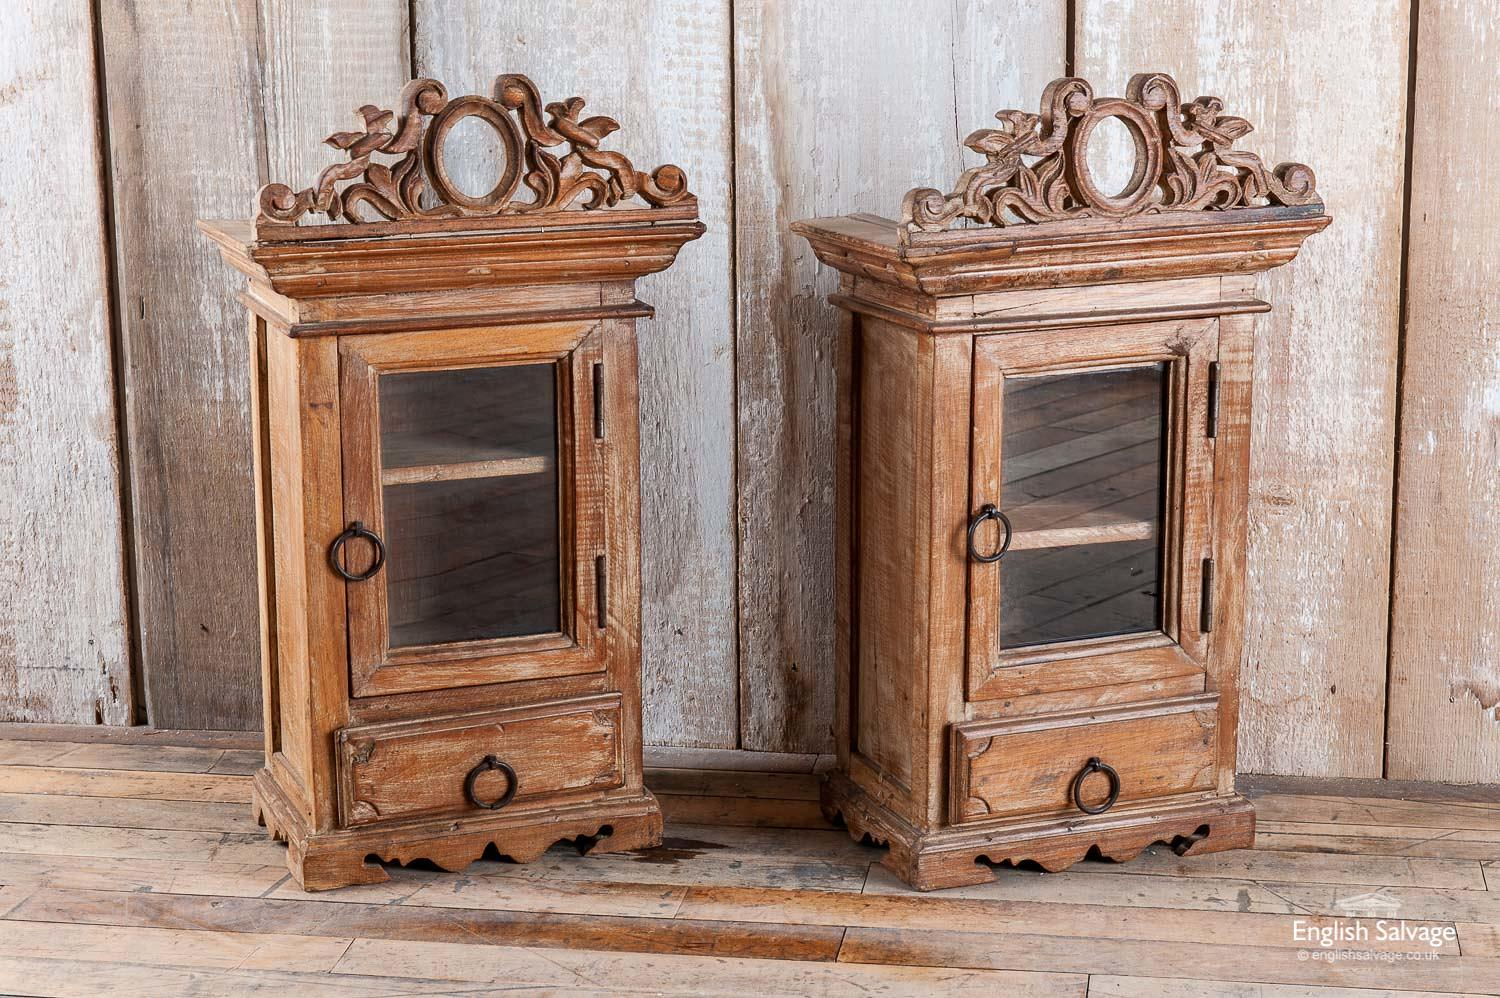 Lovely pair of small antique cabinets